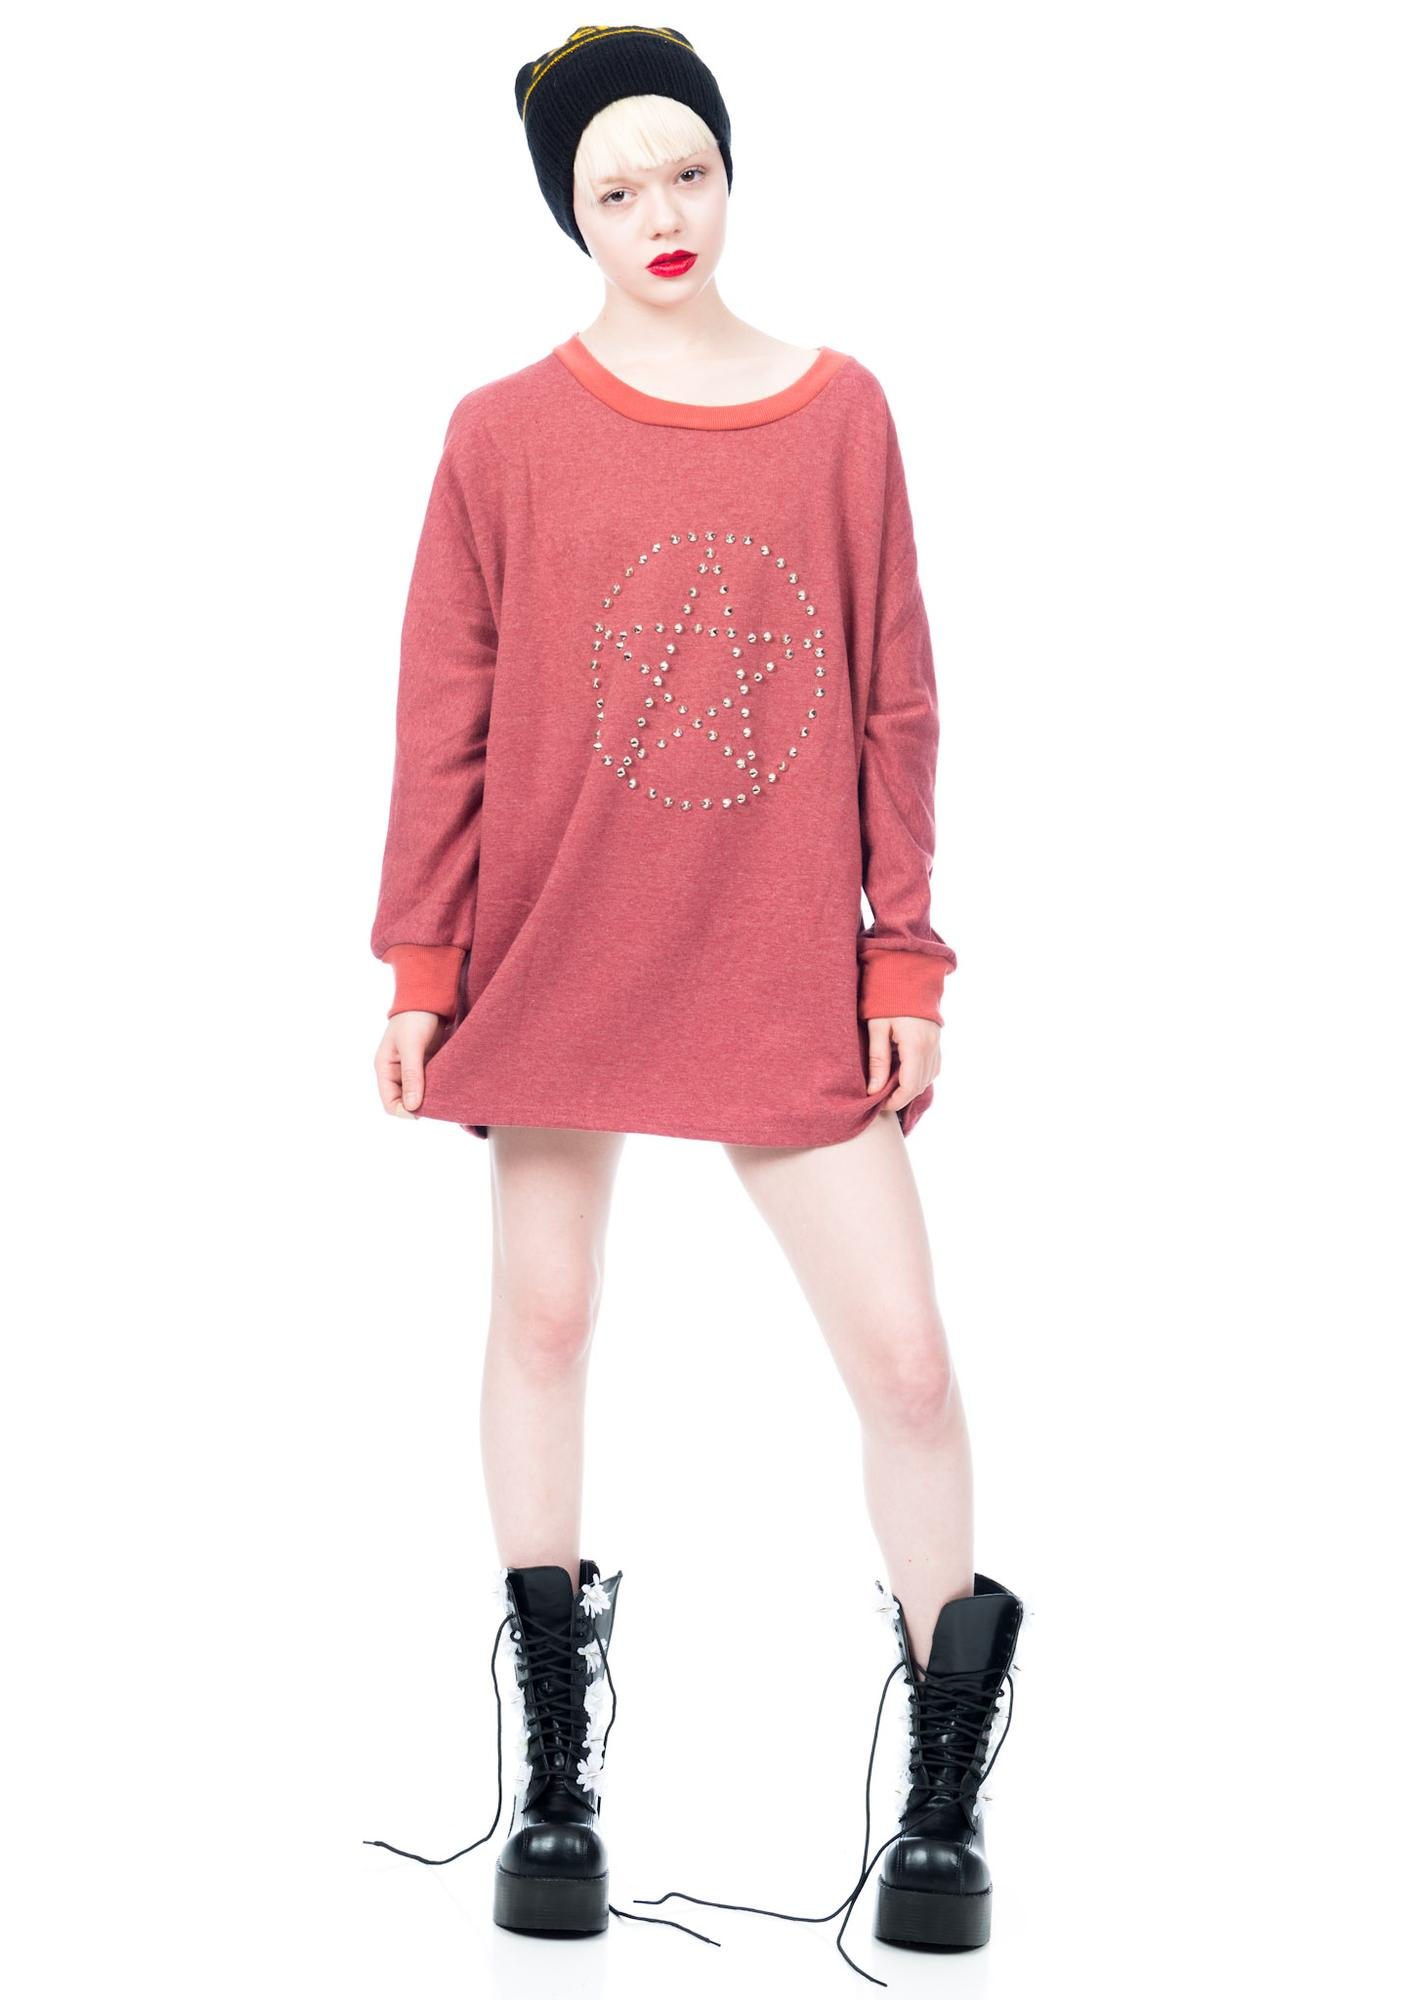 Bandaid Babes Pentagram Jumper